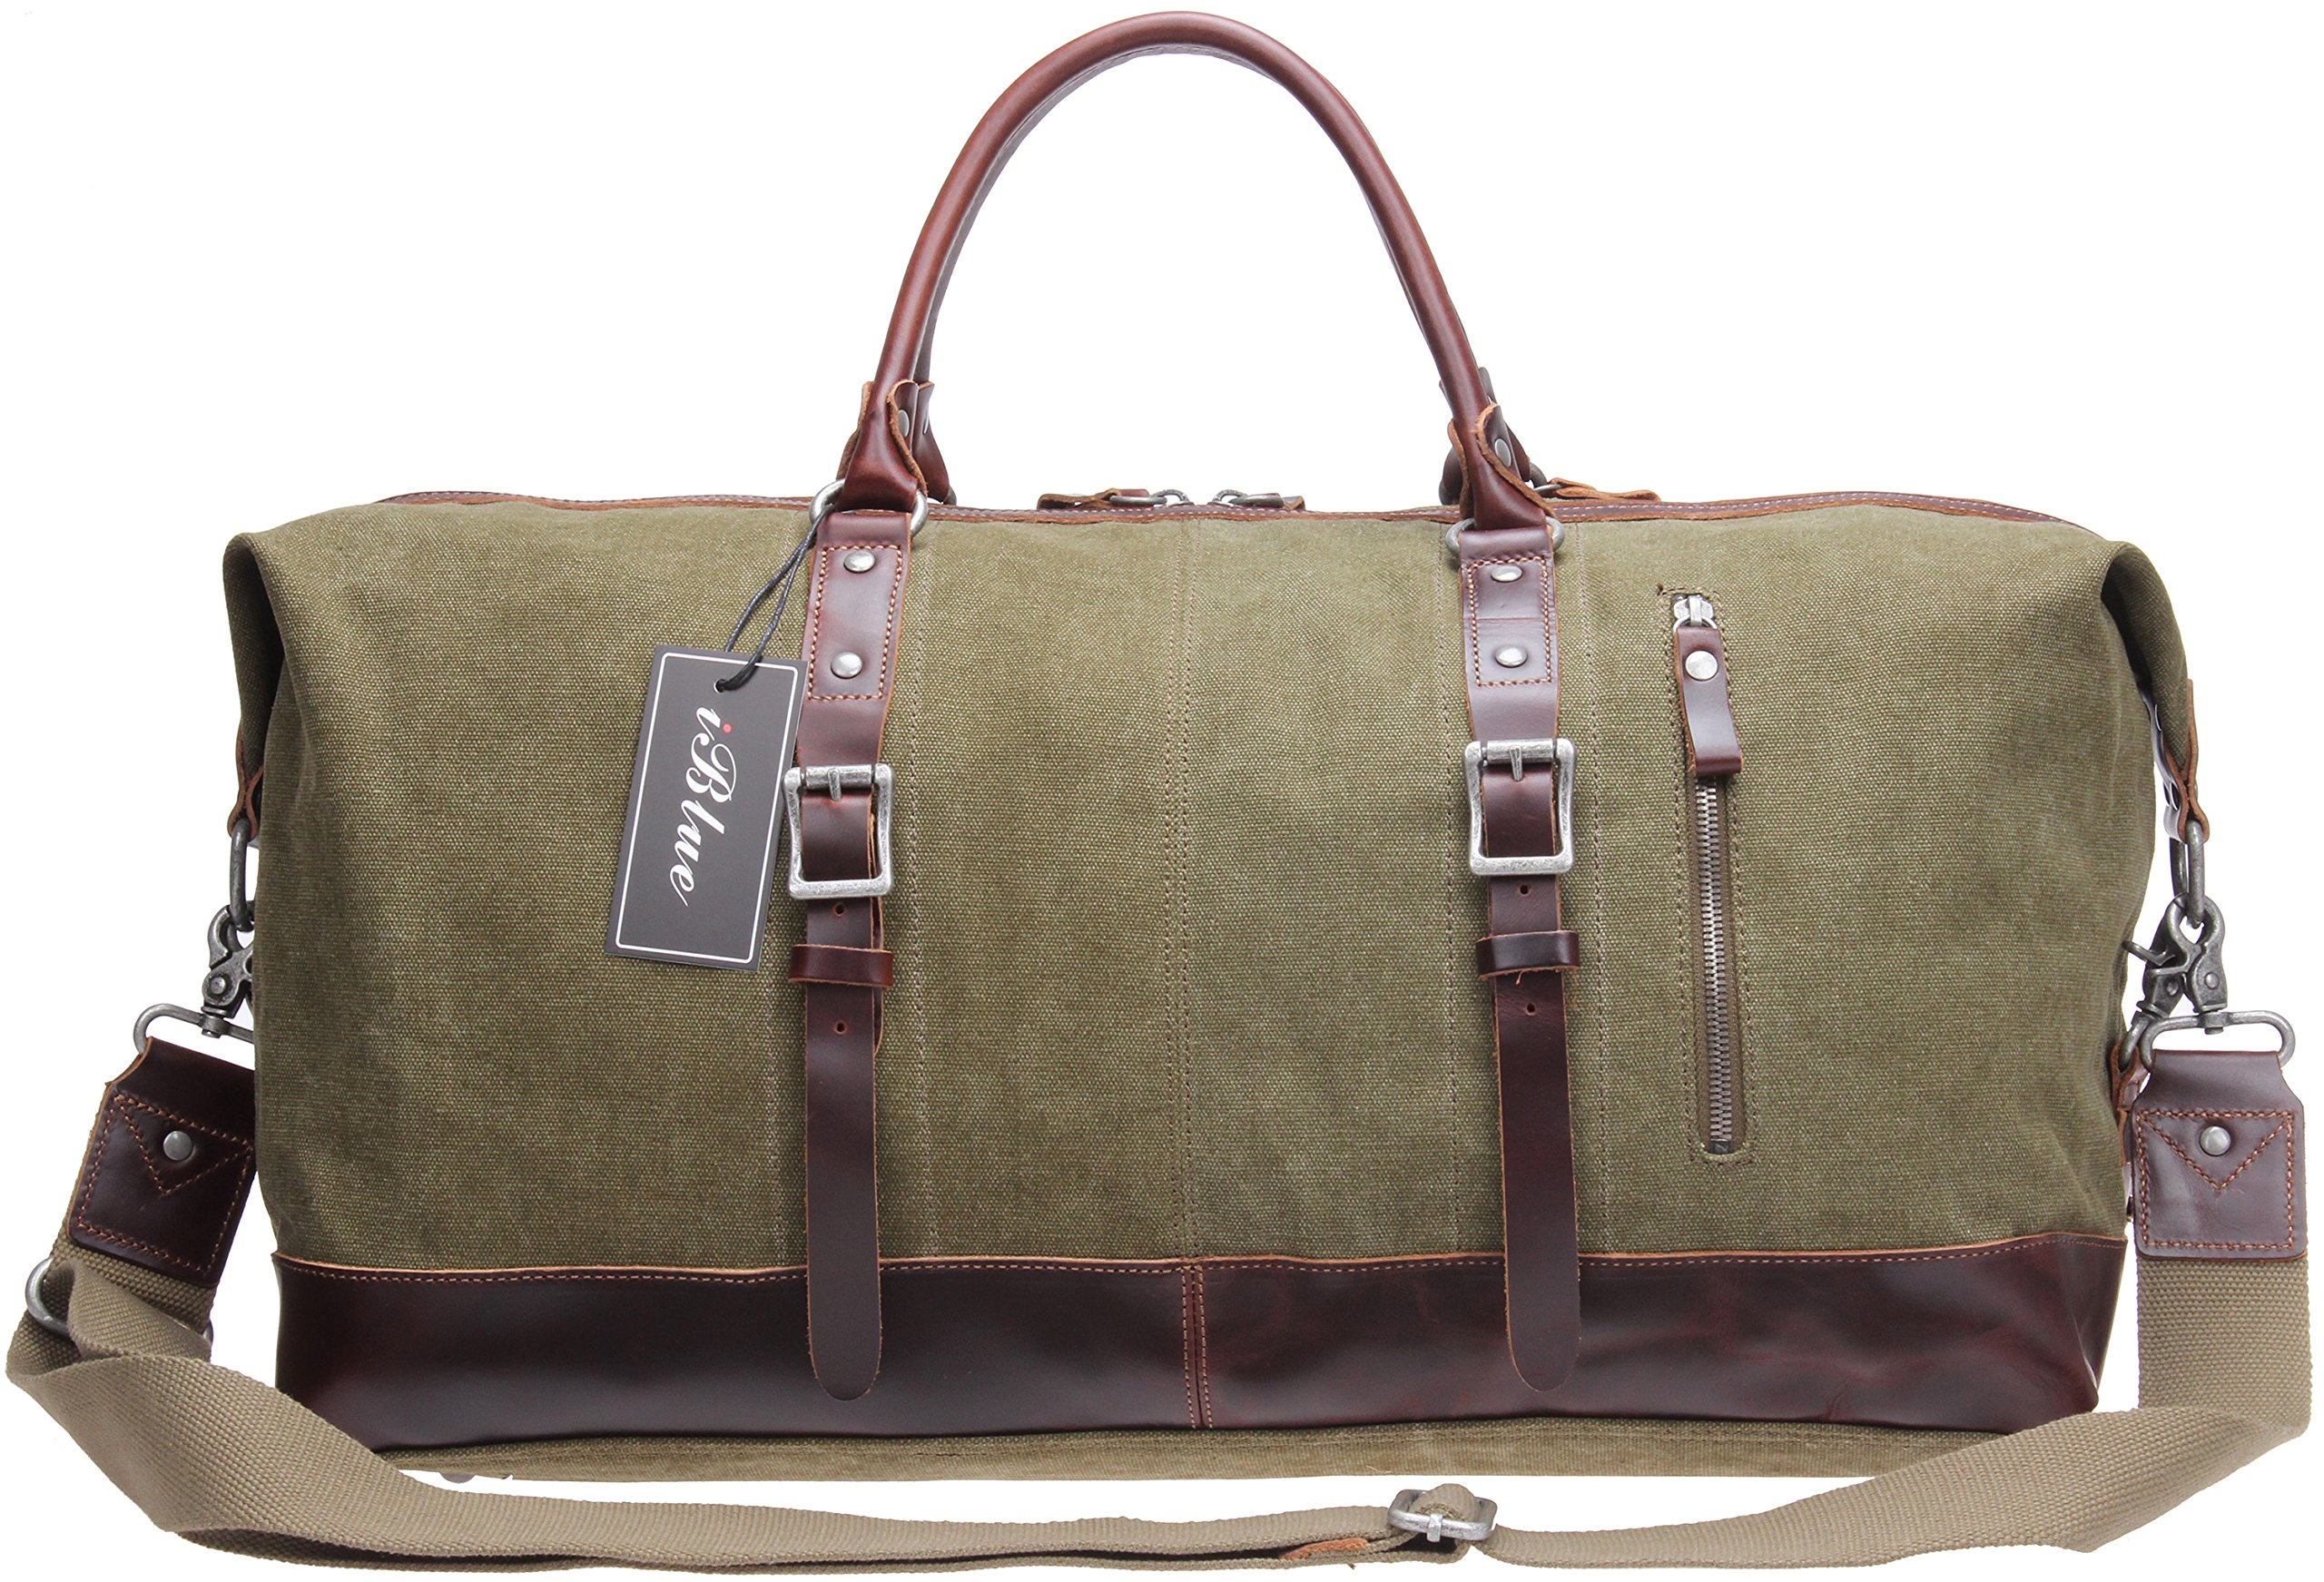 Iblue Overnight Travel Weekend Bag Canvas Leather Carry on Totes Luggage #10190 (Xl, Army Green)